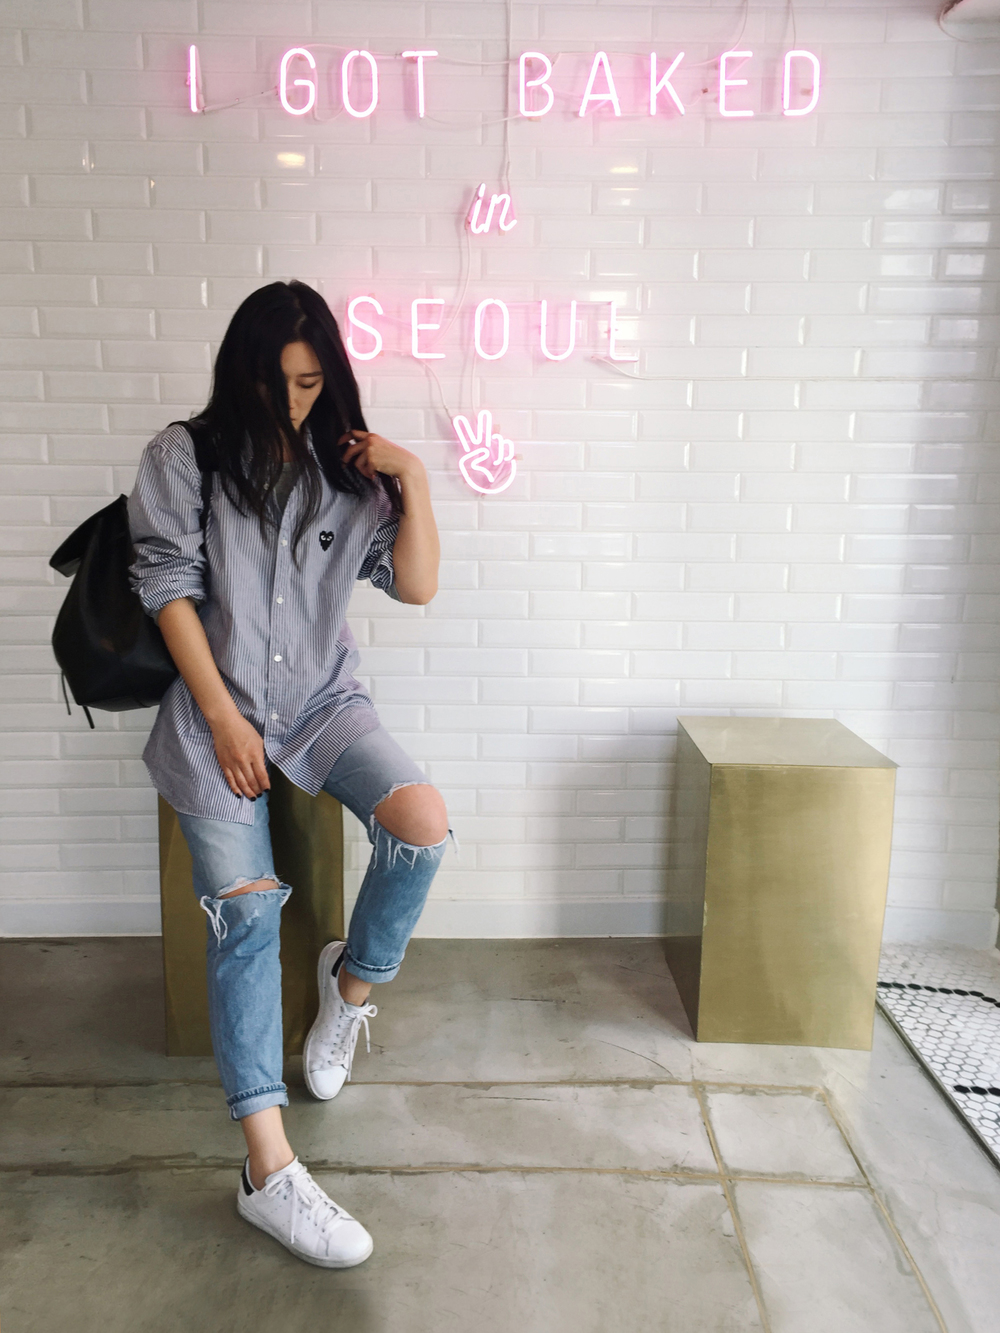 Mr. Holmes Bakehouse PLAY COMME DES GARÇONS Shirt(More here)/CITIZENS OF HUMANITY Jeans/MANSUR GAVRIEL Bag/ ADIDAS Sneakers